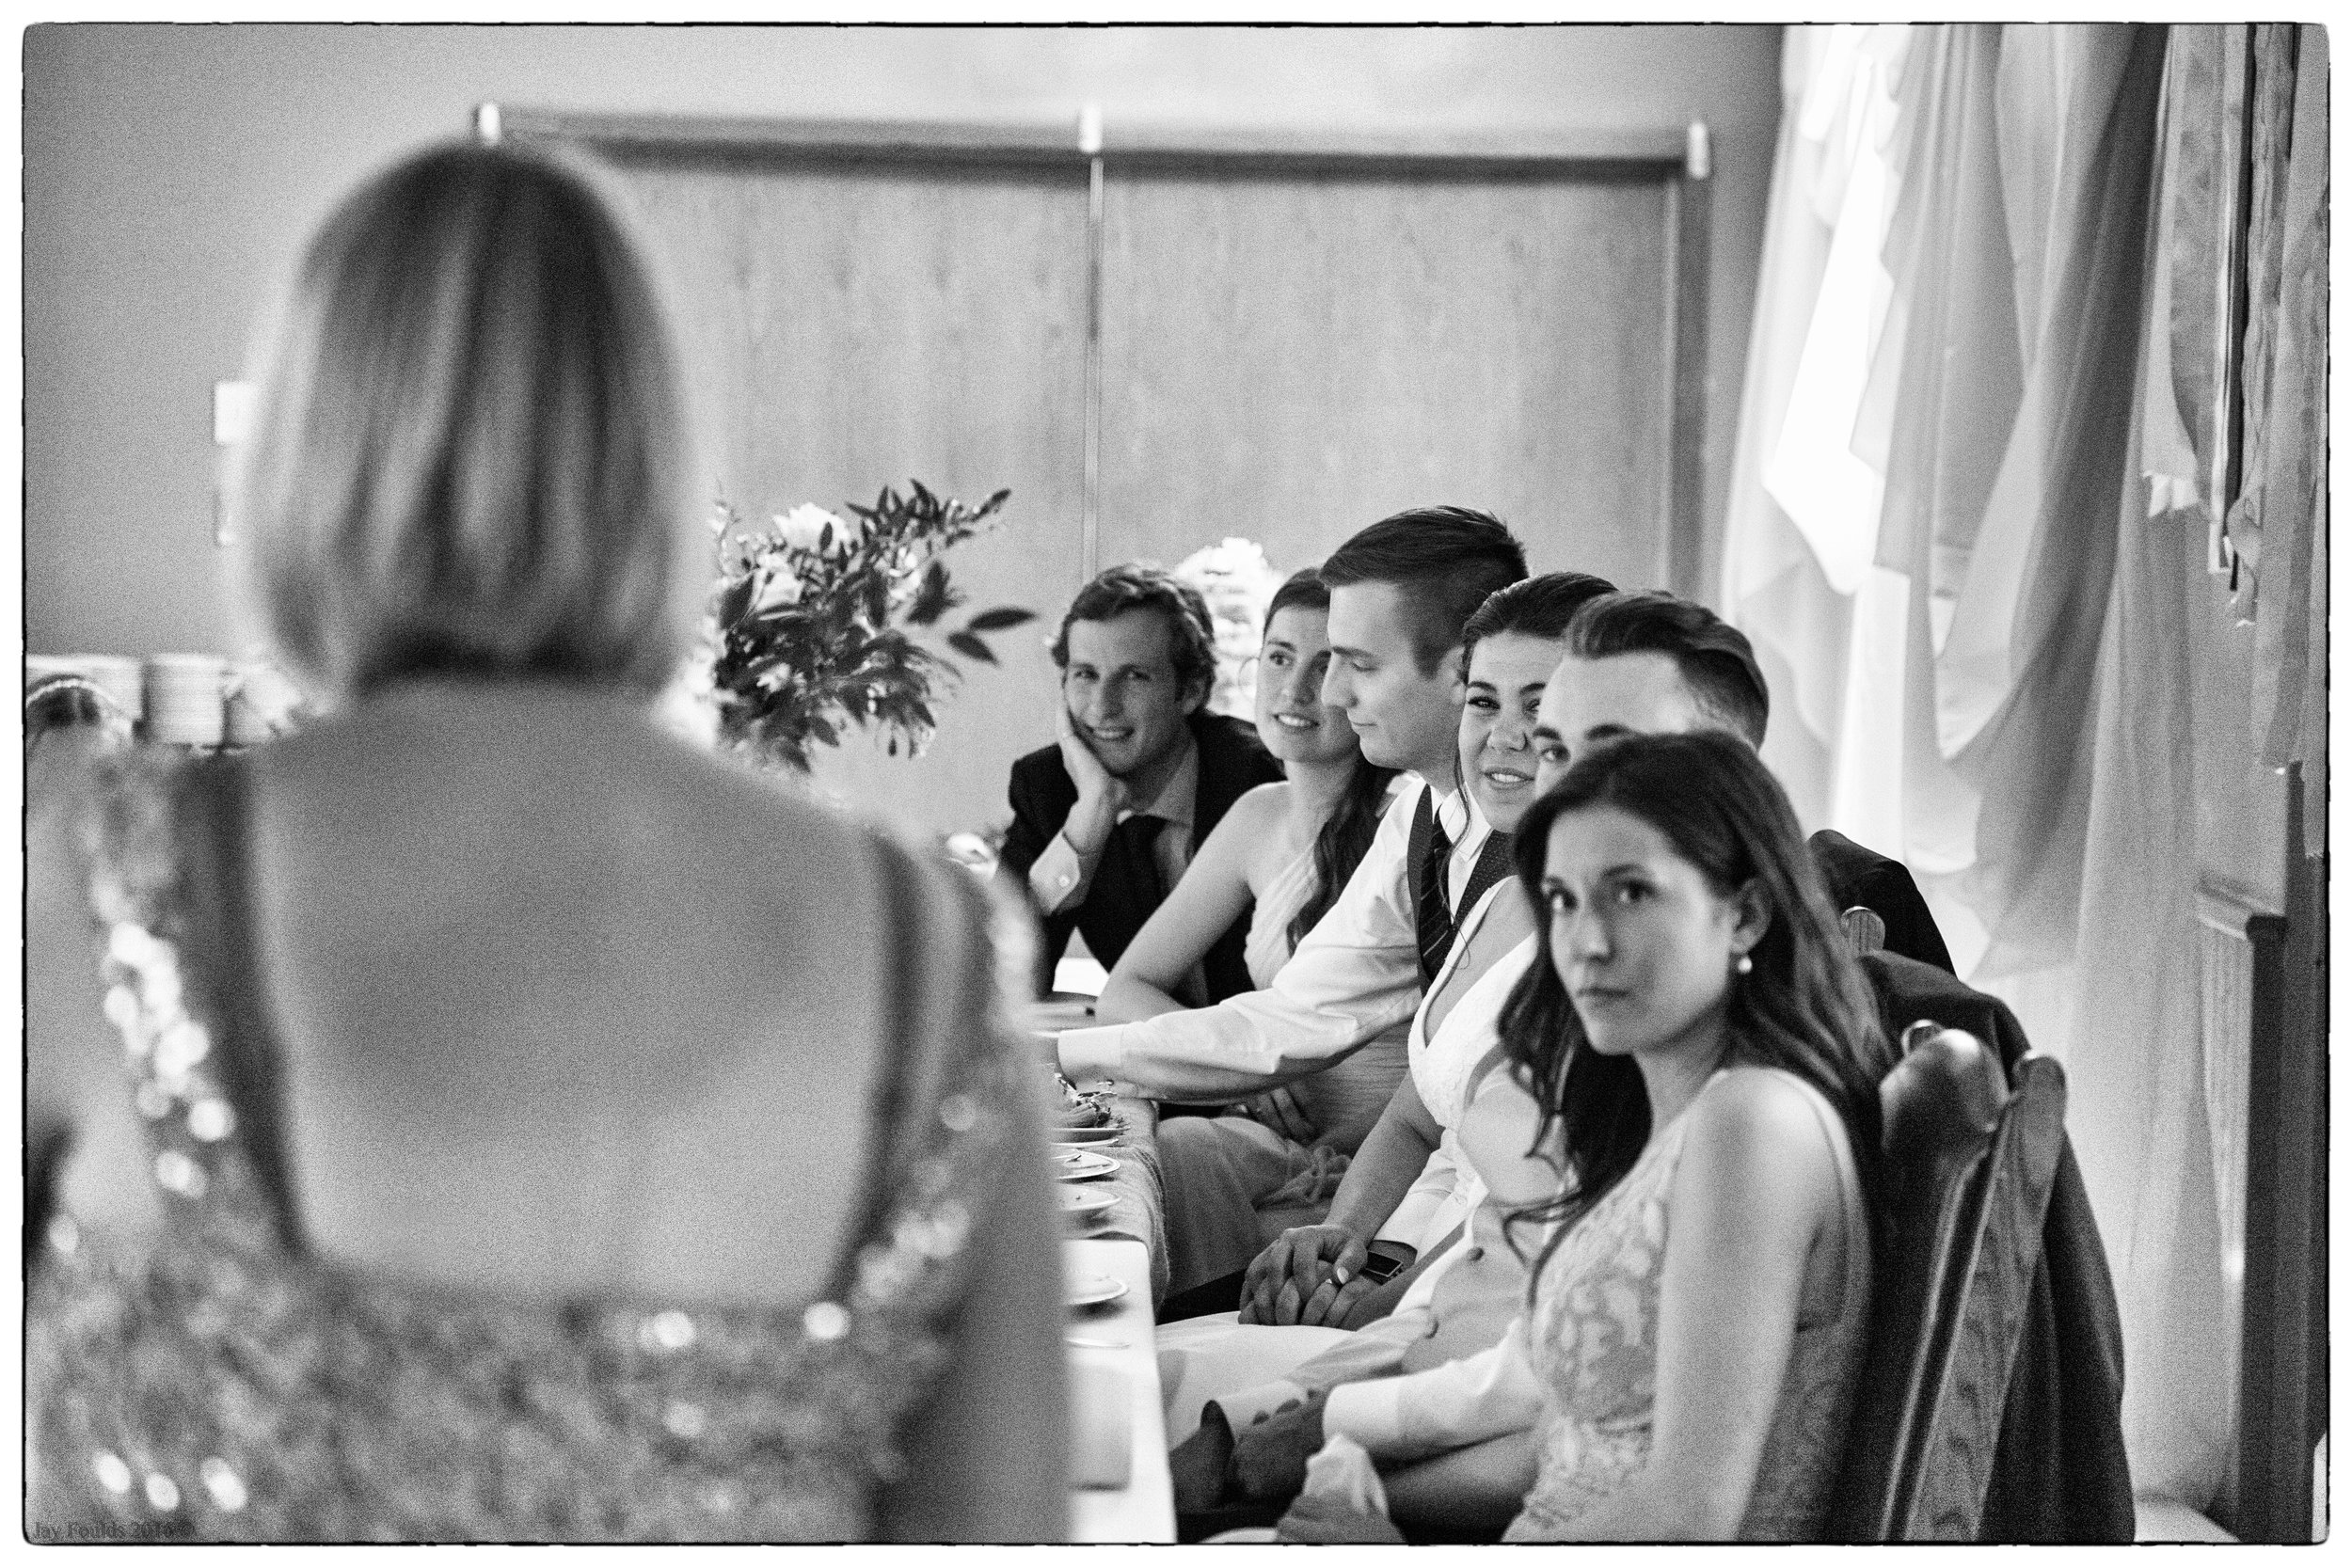 Halos - Jean Wedding - 02 July 2016 - The Celebration - 165 (fine art).JPG